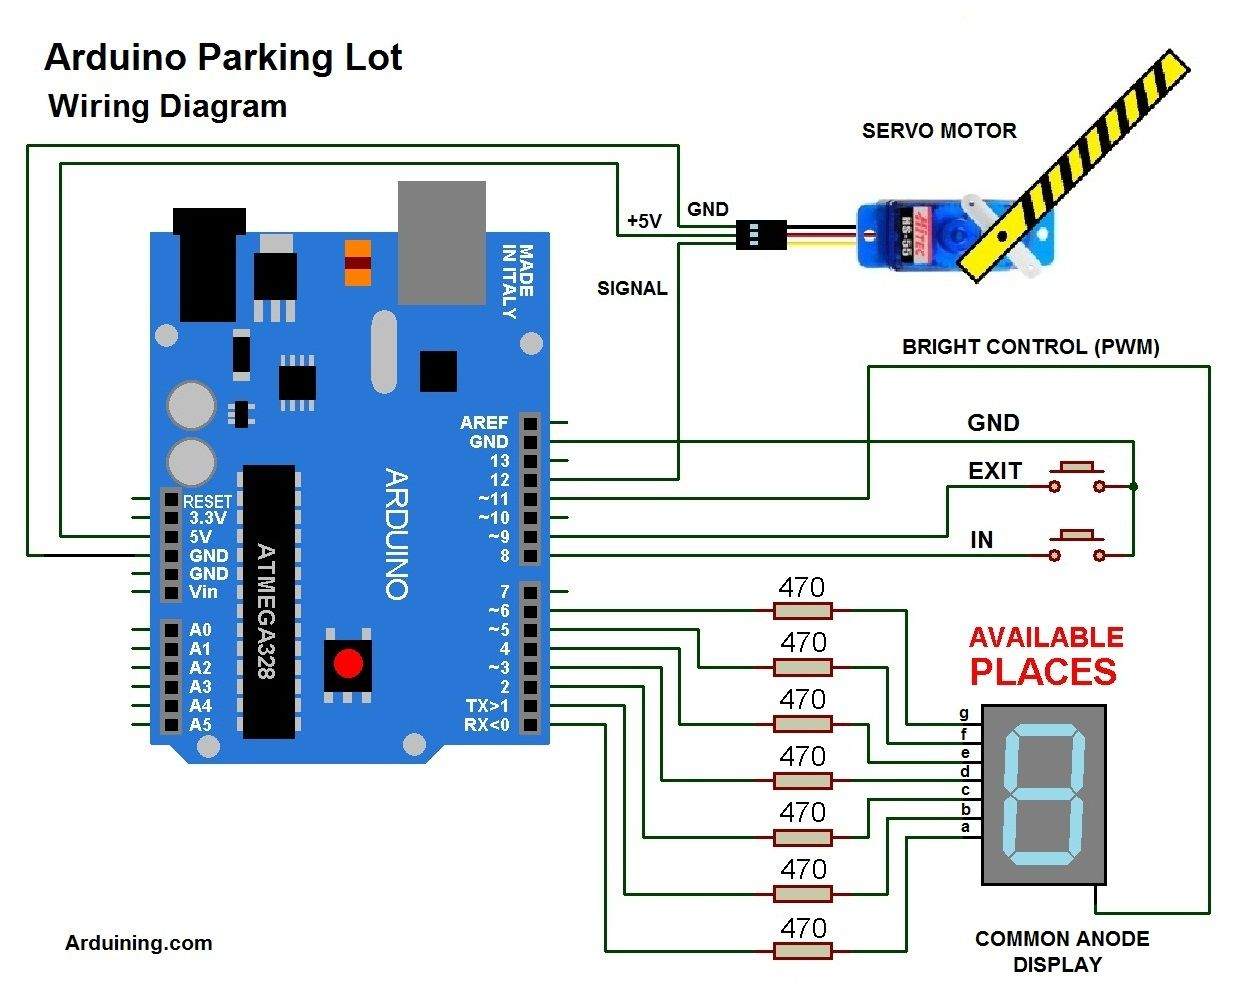 wiring diagram here is the code /parkingl02pde arduining